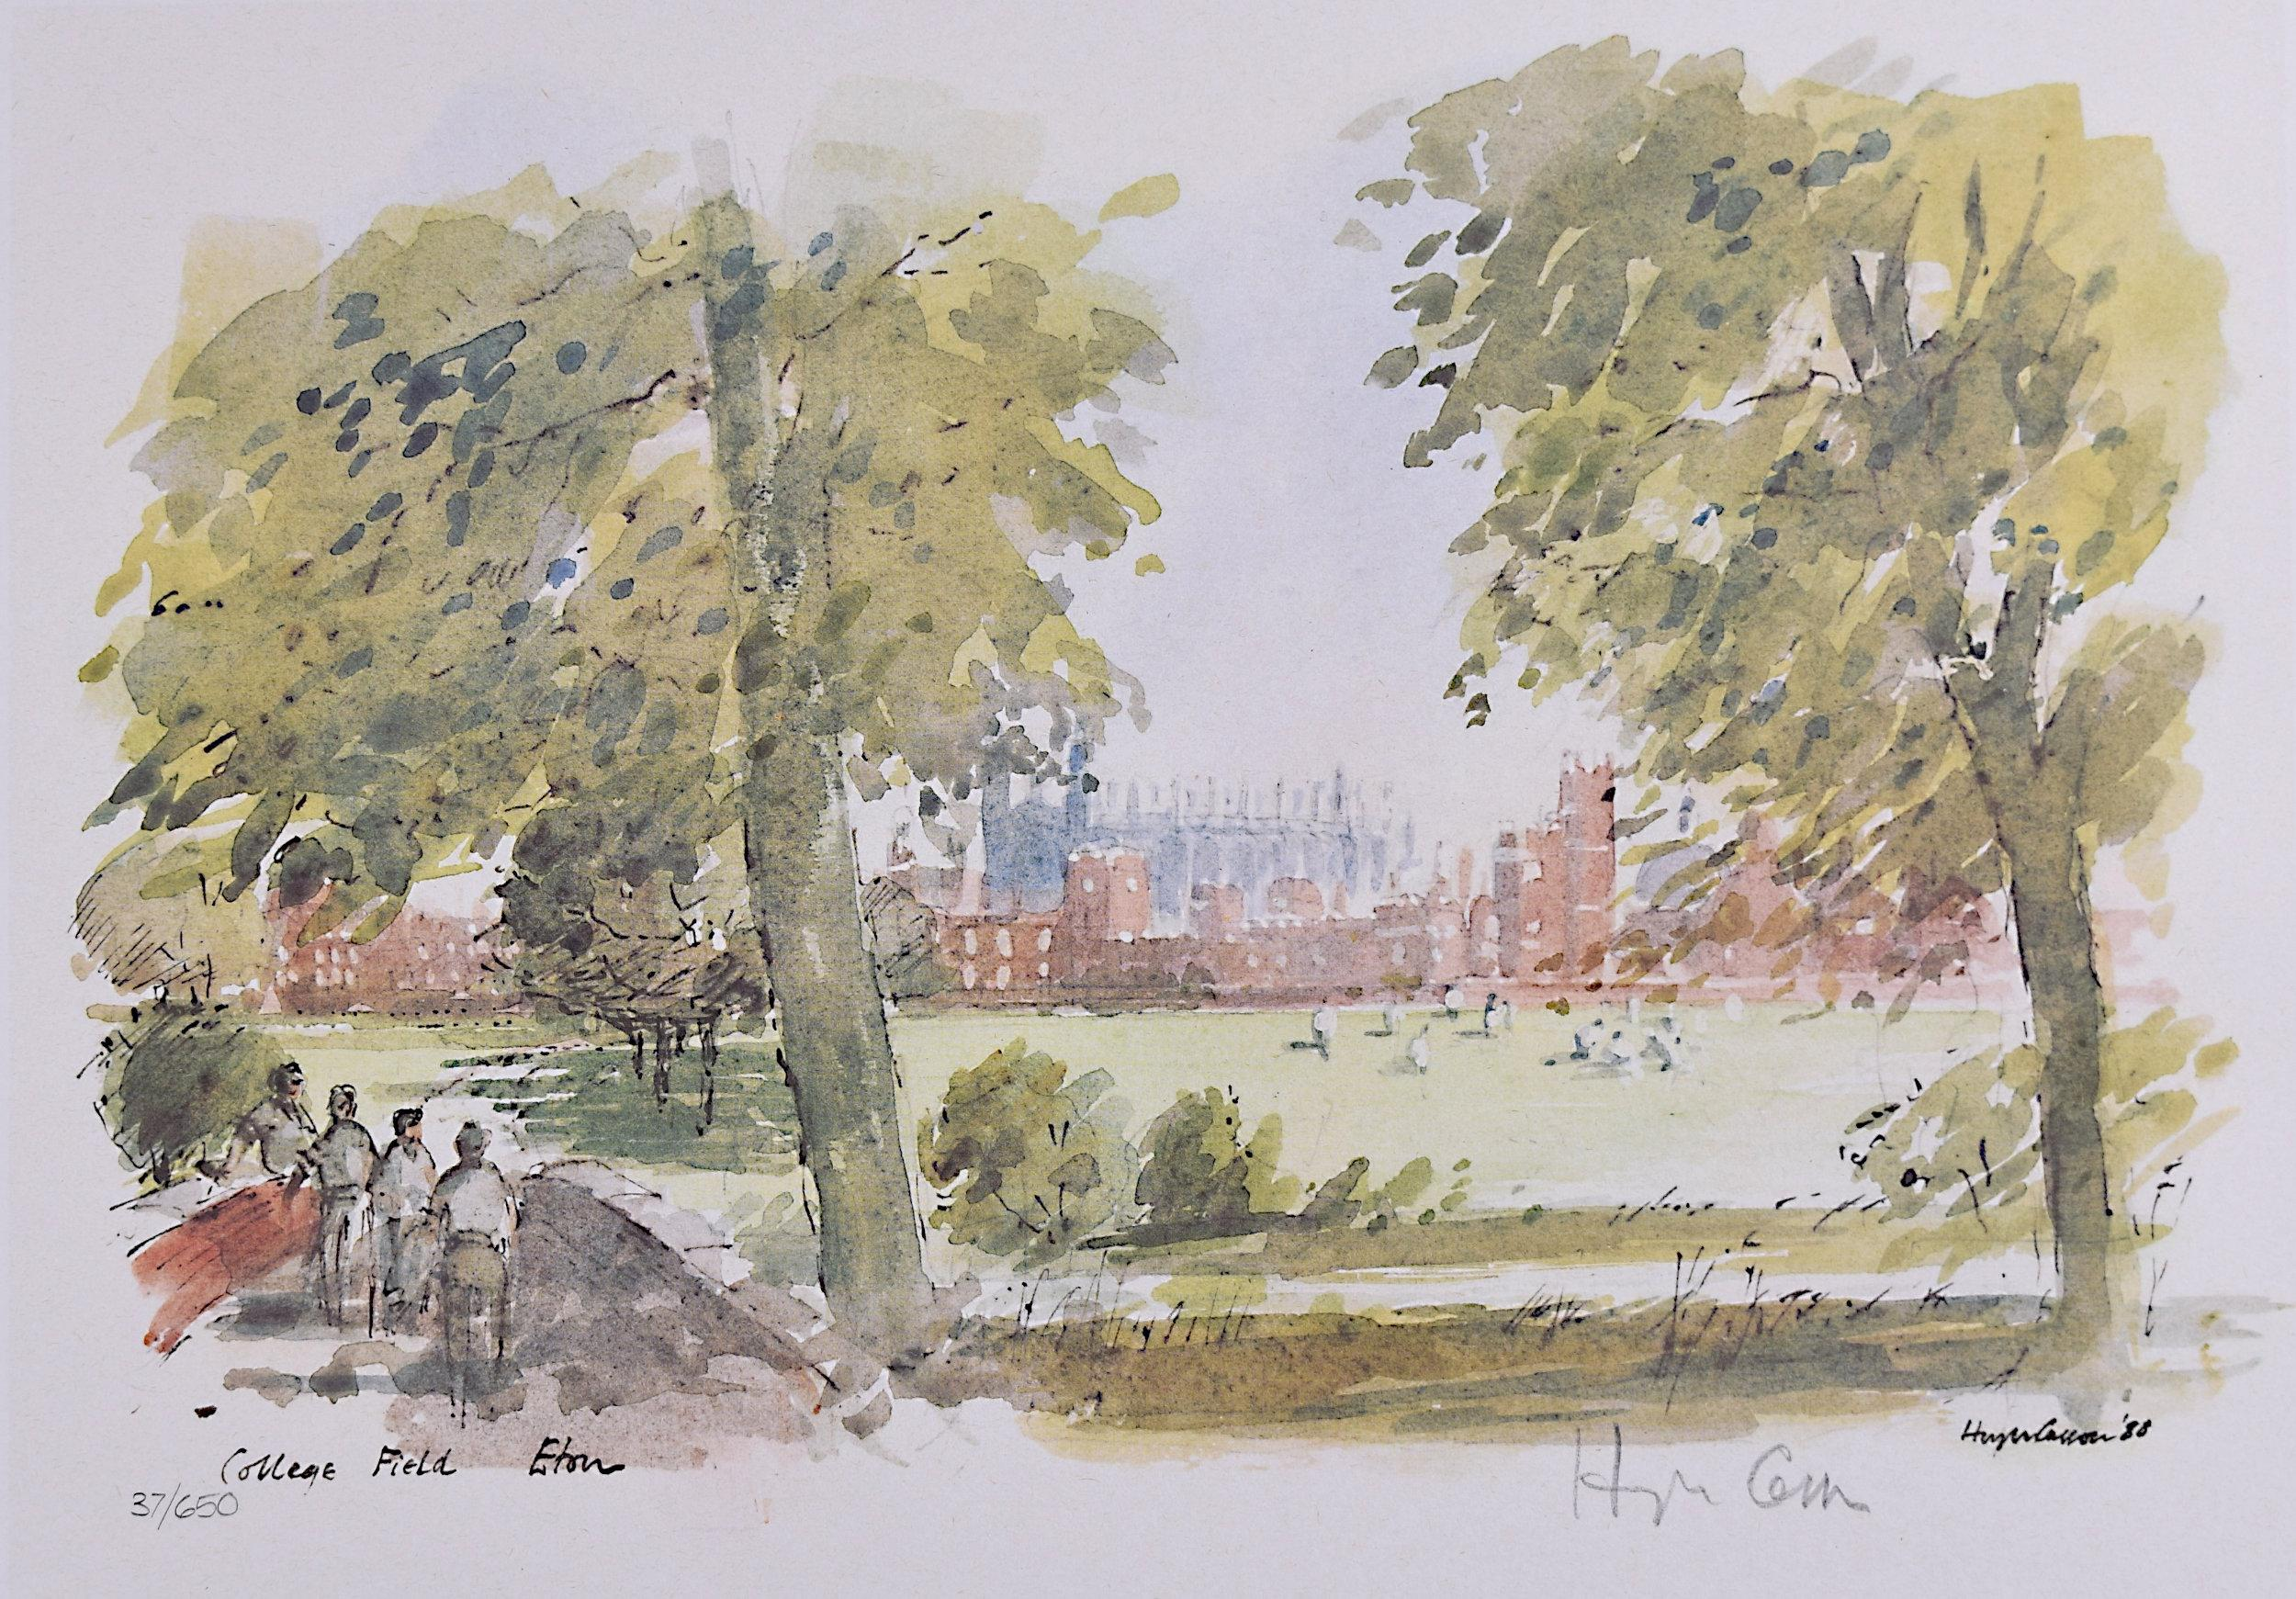 Hugh Casson Eton College 'College Field' signed limited edition print